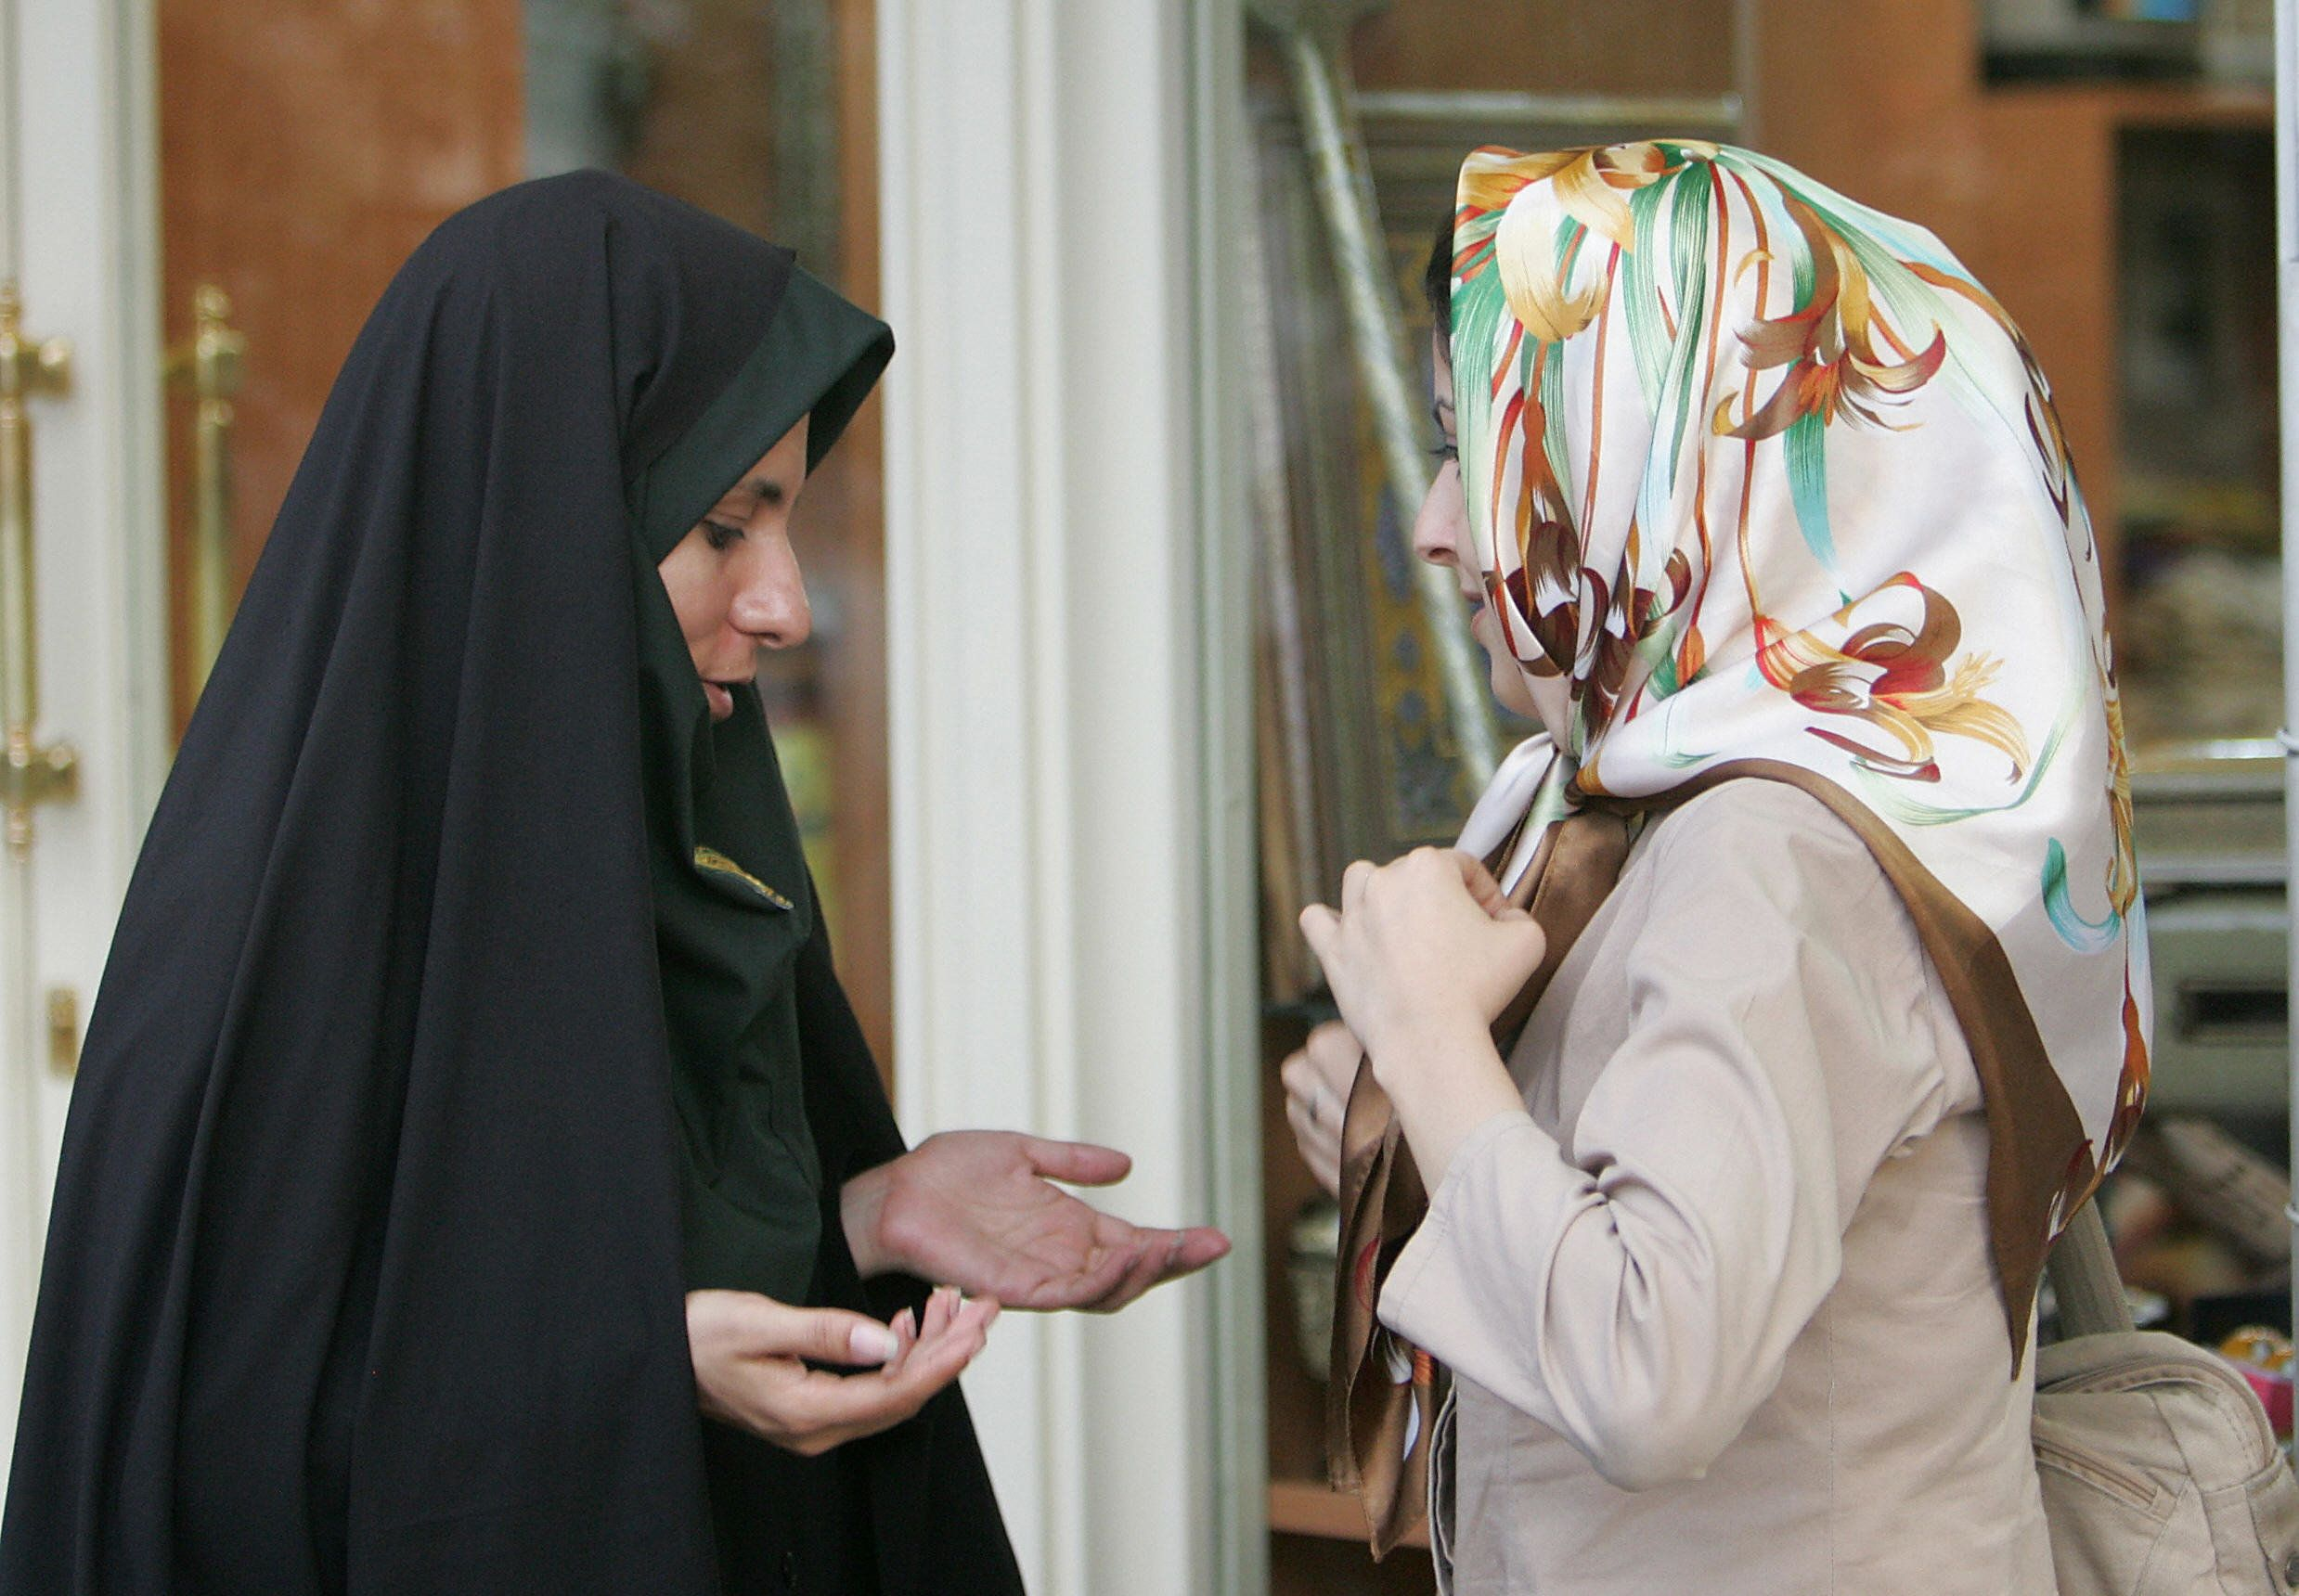 Iranian women no longer face being jailed for violating 'Islamic' dress code